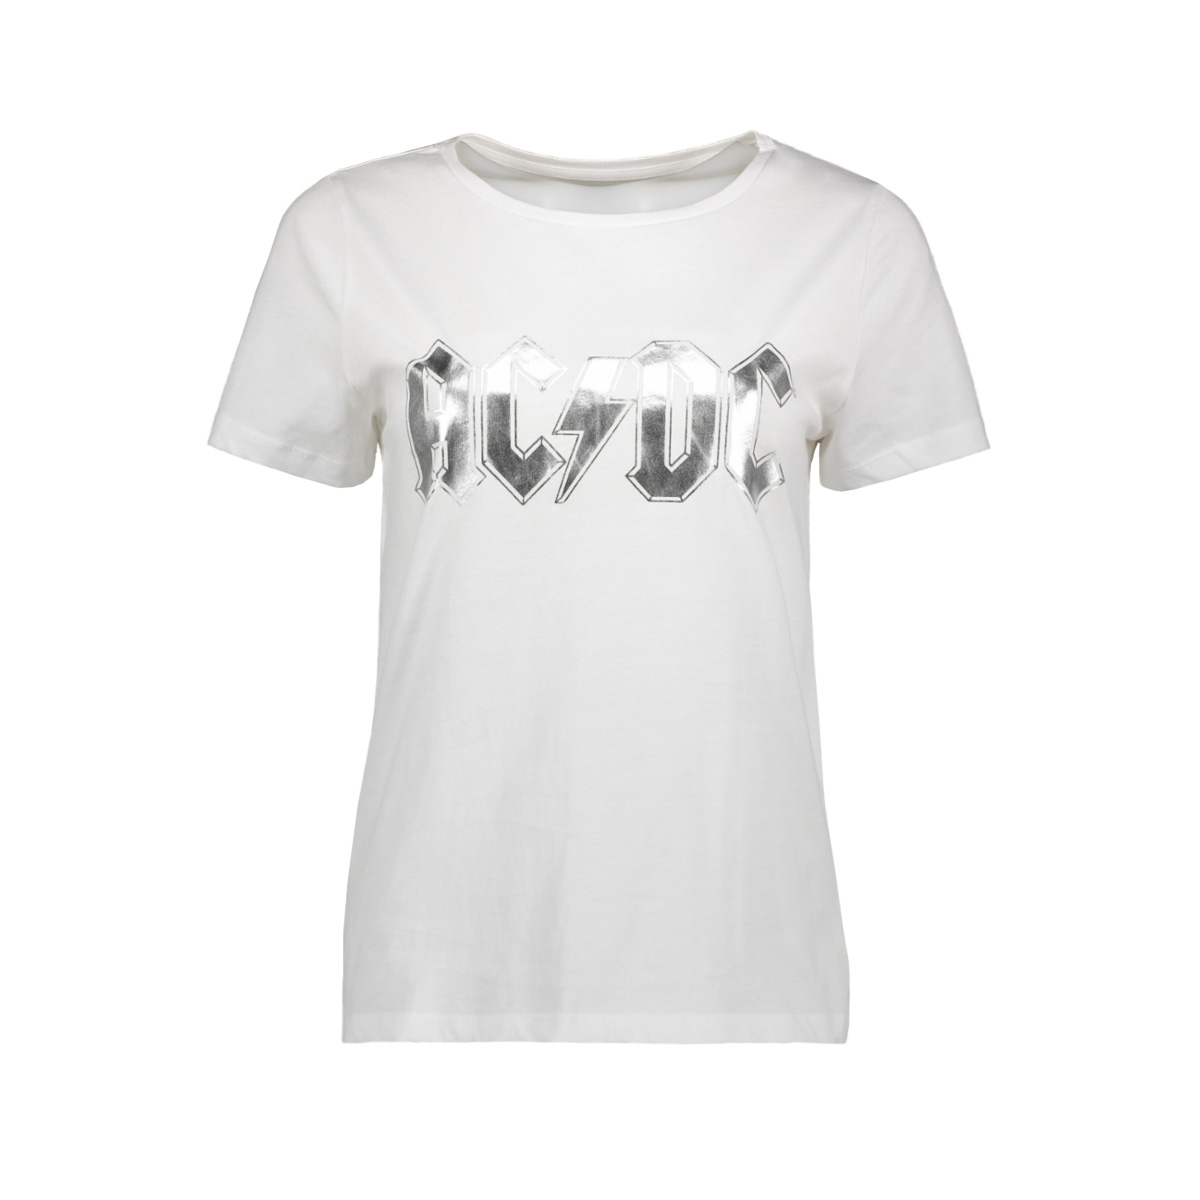 nmac nate s/s  top 27010334 noisy may t-shirt bright white/acdc in  fo